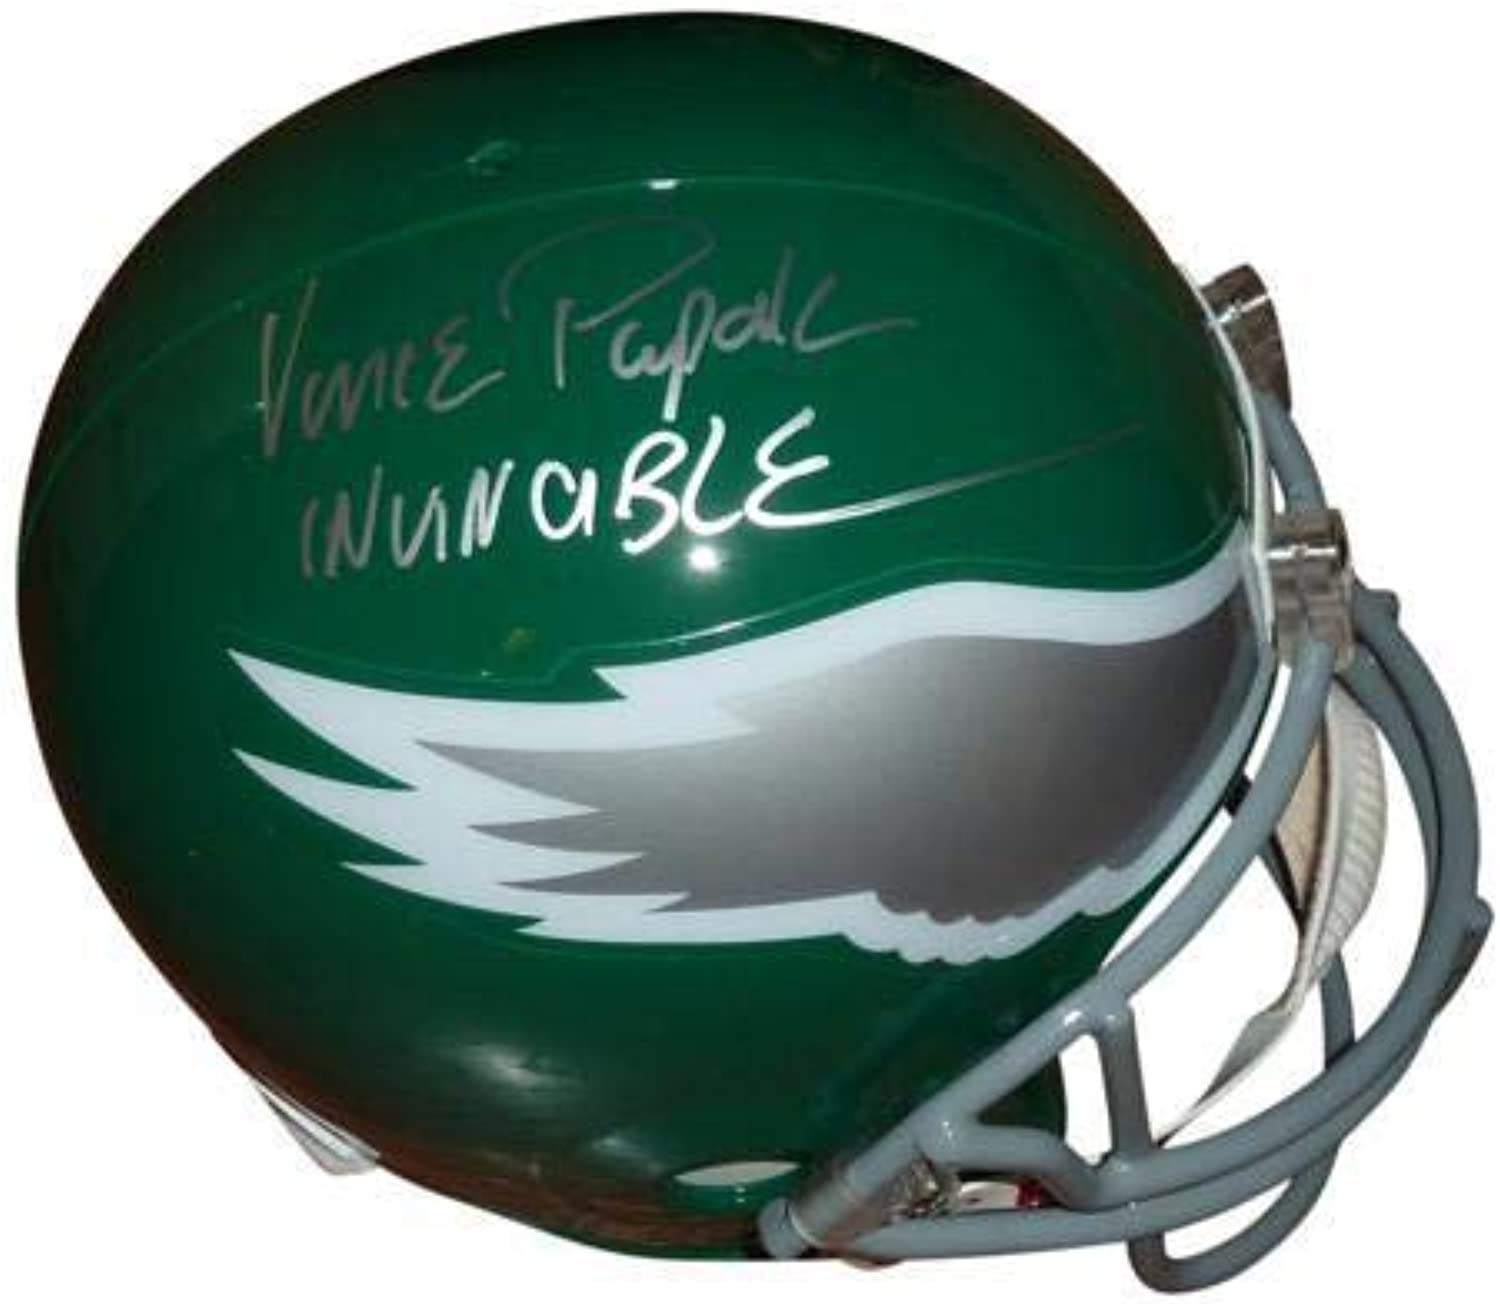 Vince Papale Signed Helmet  Throwback Deluxe Full Size Replica w Invincible  Autographed NFL Helmets